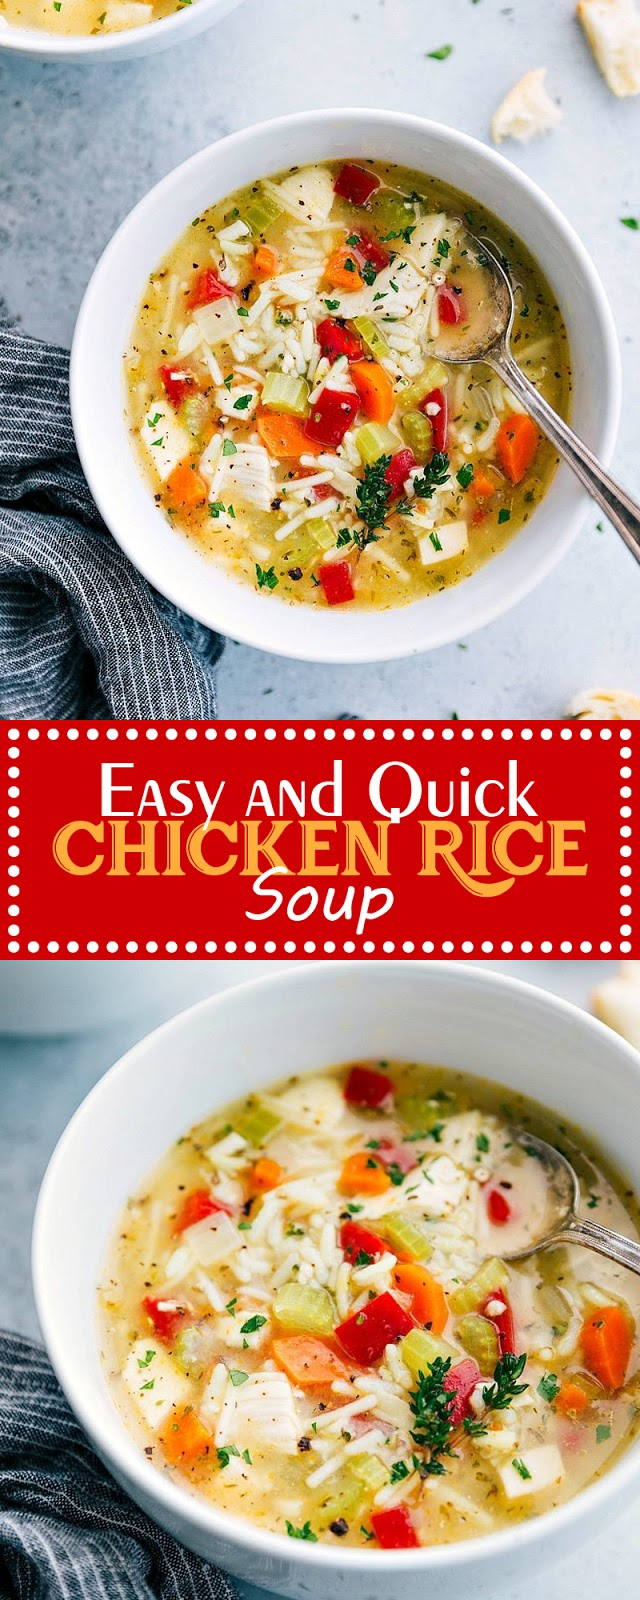 EASY AND QUICK CHICKEN RICE SOUP